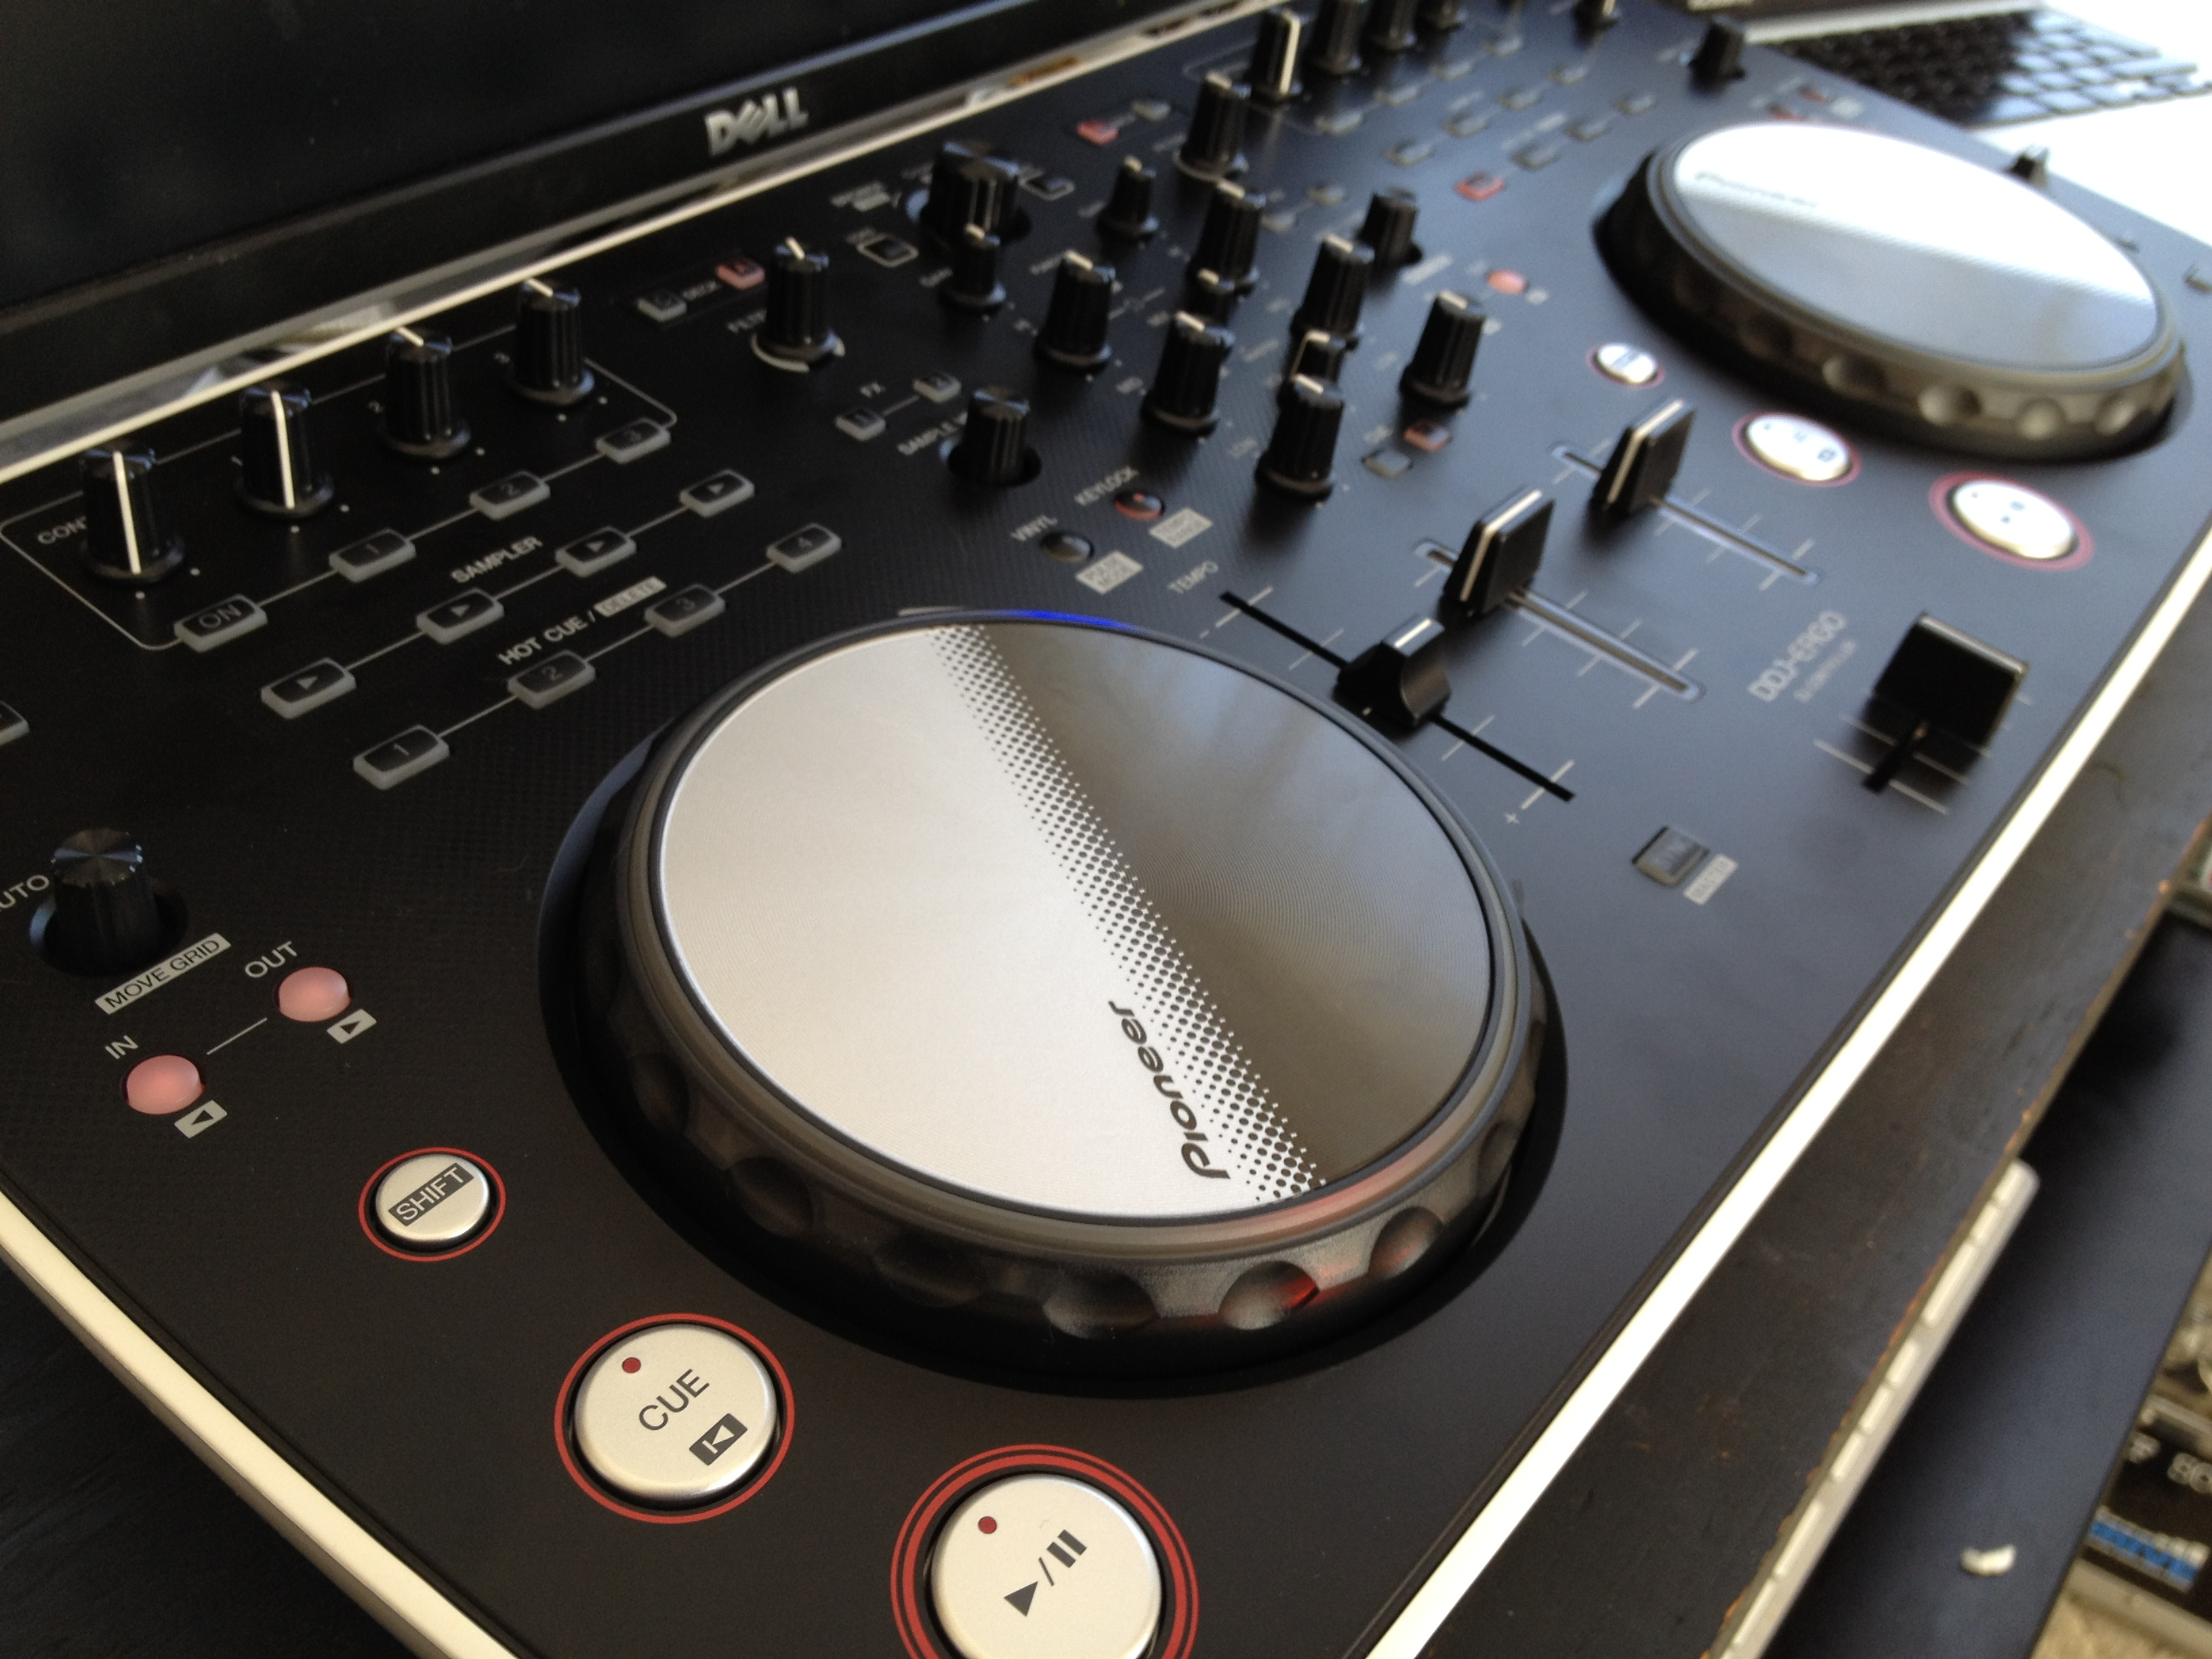 Pioneer's DDJ-ERGO is aimed at the aspiring DJ. Does it hit or miss?